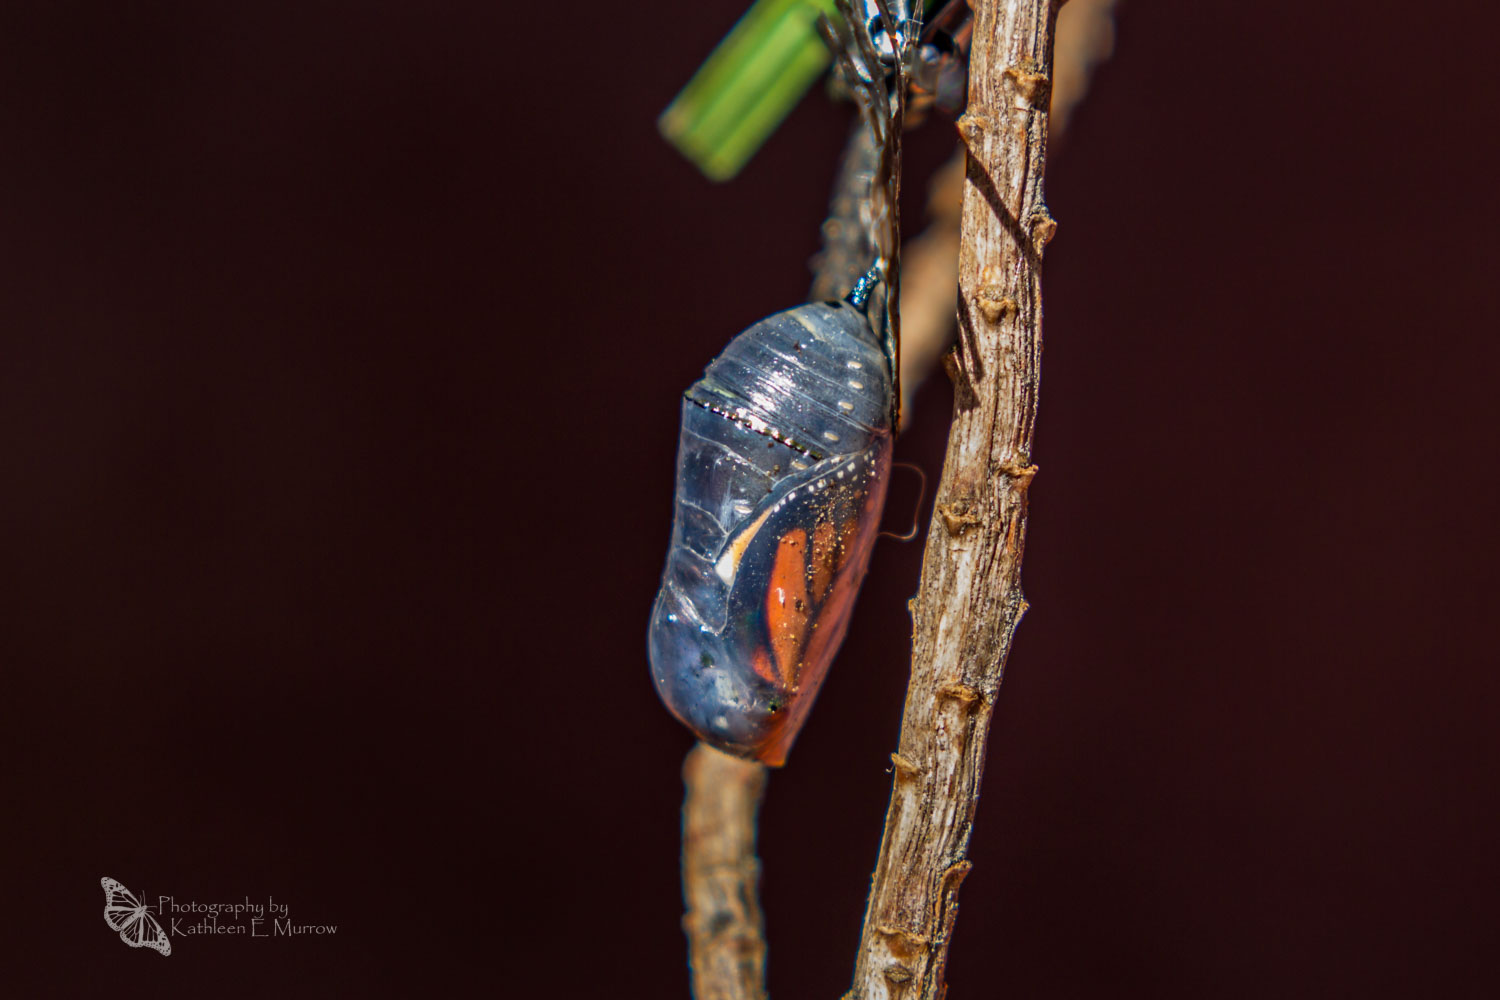 A monarch butterfly chrysalis, attached to a stick, with black and orange wings showing beneath the cuticle (casing) of the chrysalis